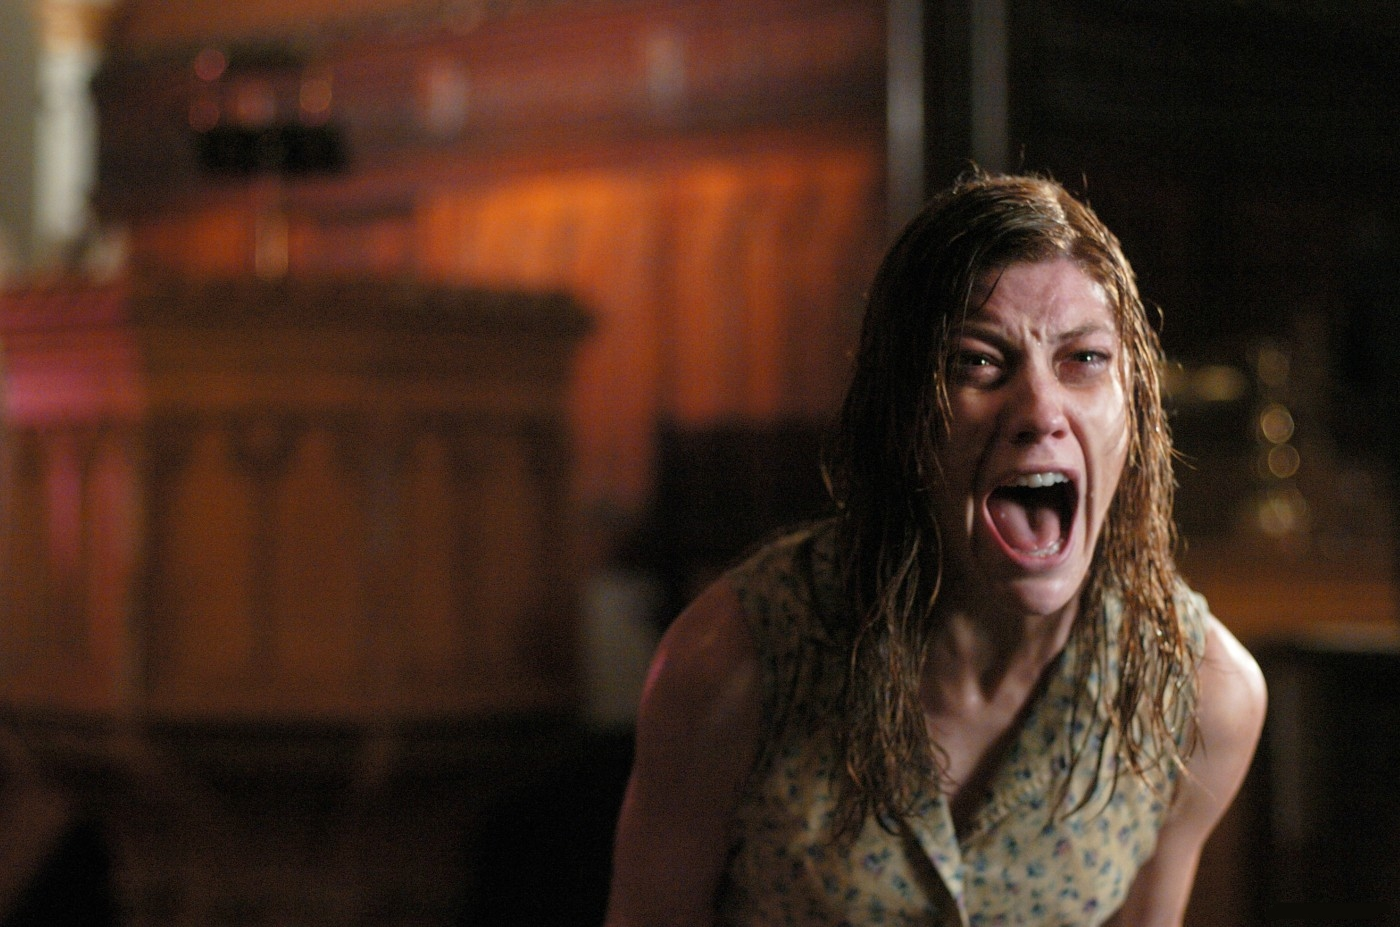 Still from The Exorcism of Emily Rose